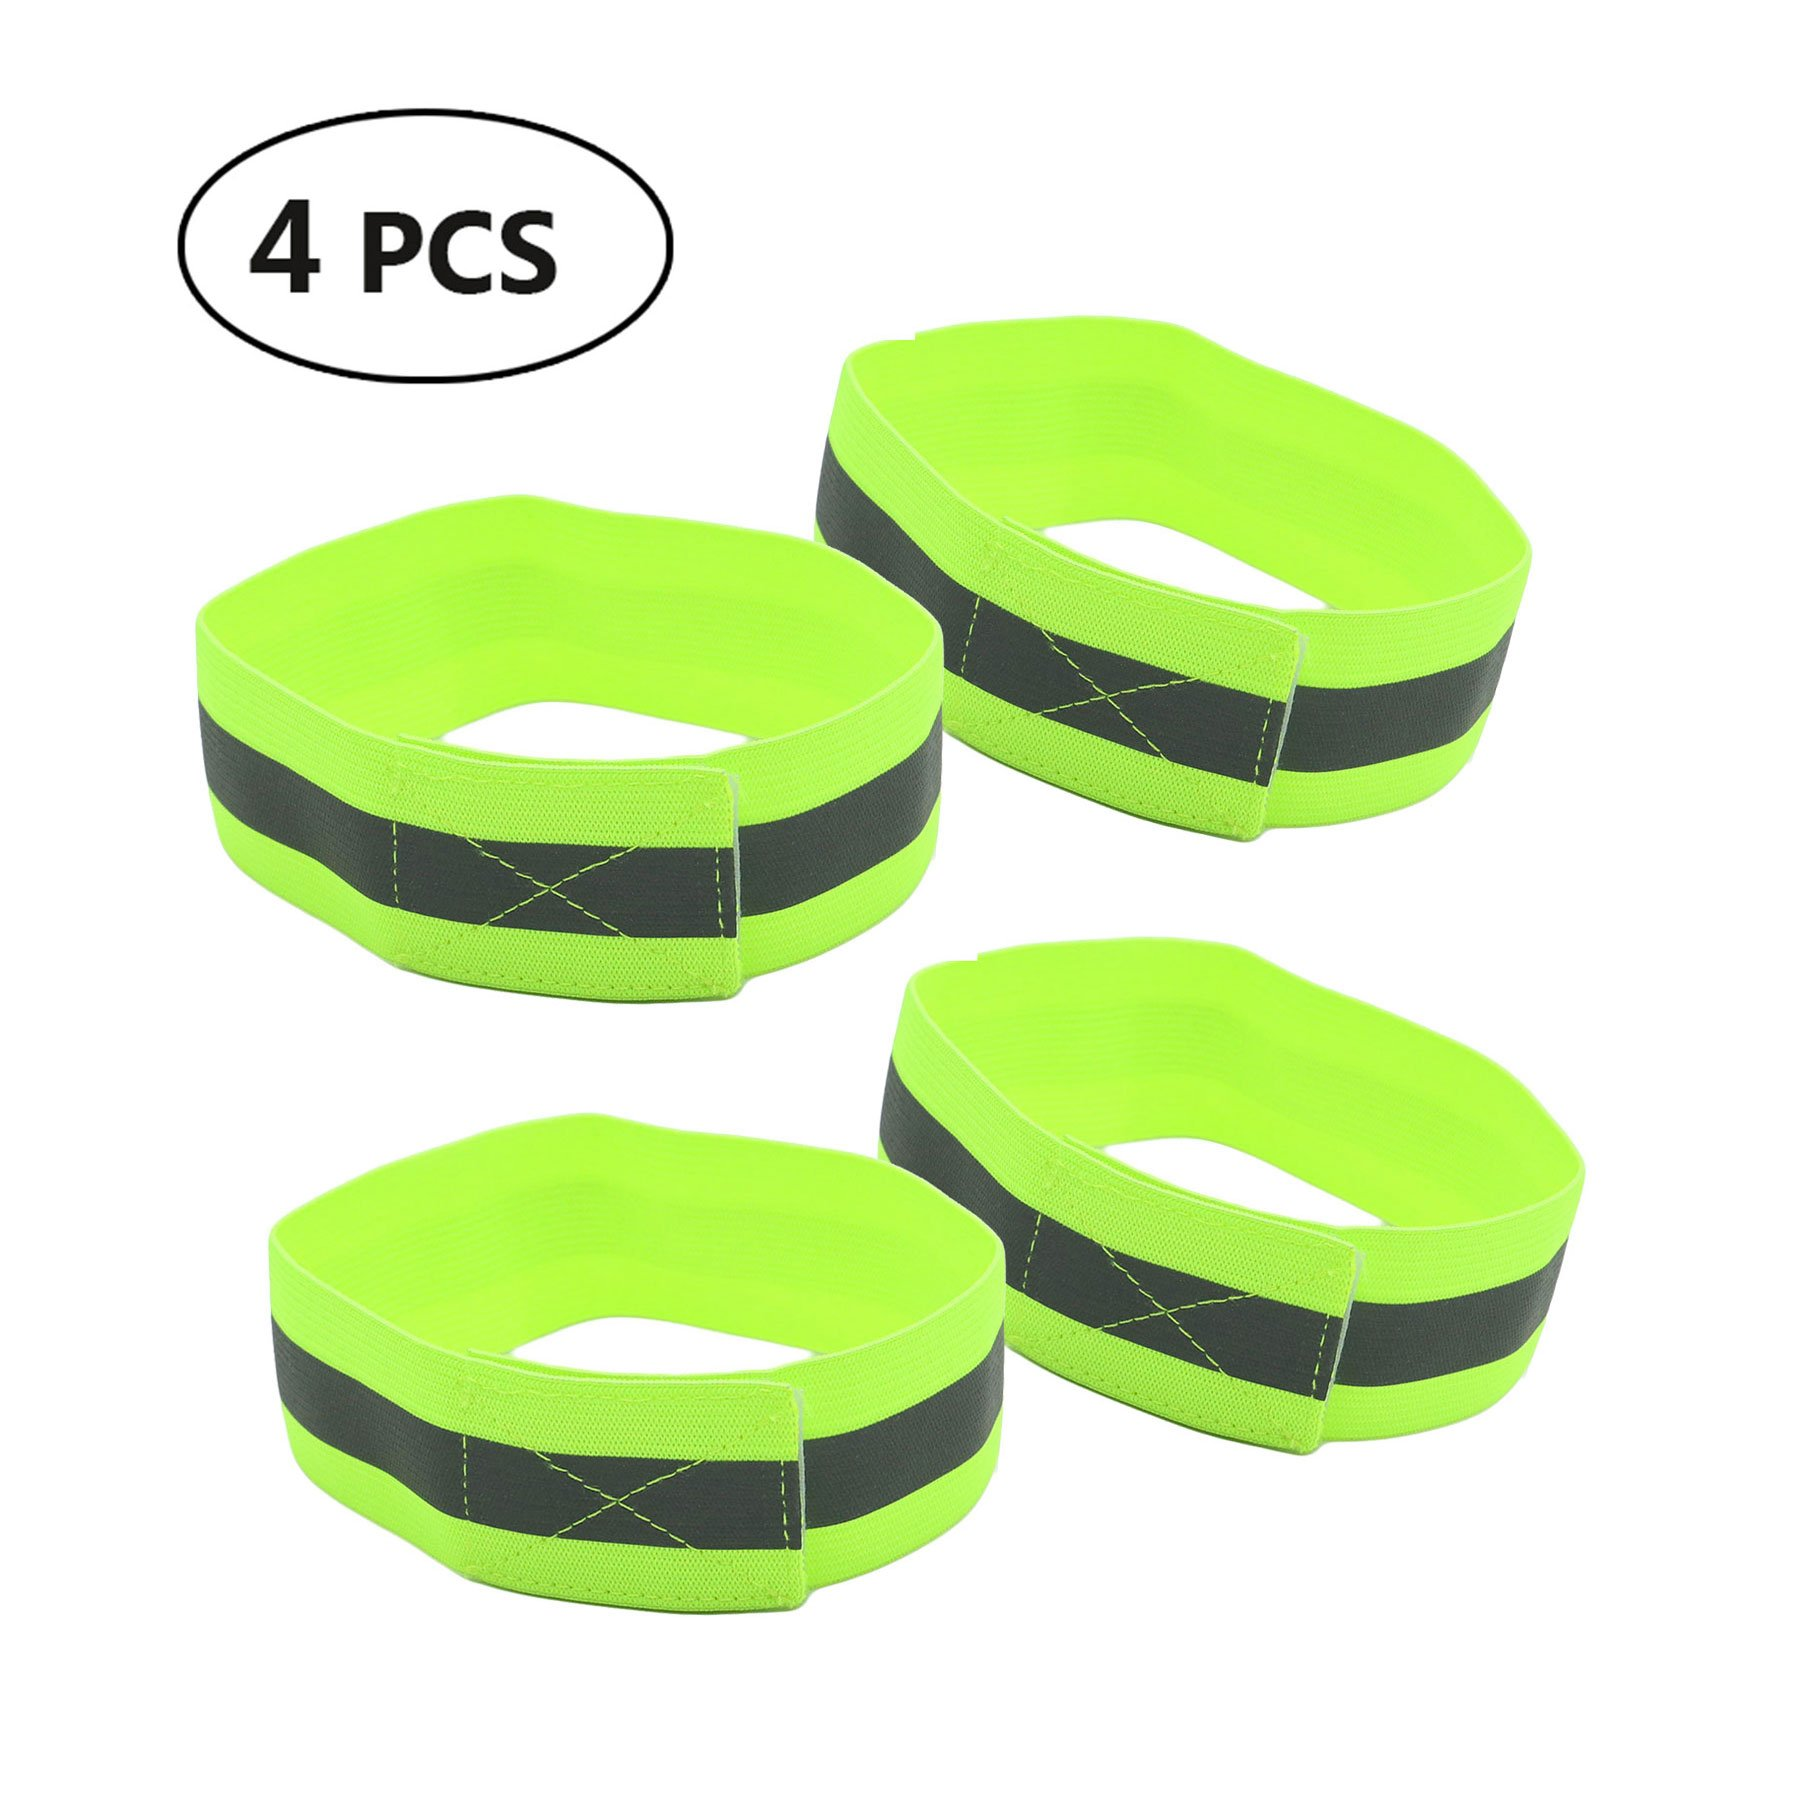 2018 1 Pair High Visibility Band Reflective Wristbands Elastic Ankle Wrist Bands Arm For Waling Cycling Running Outdoor Sports Sports & Entertainment Running